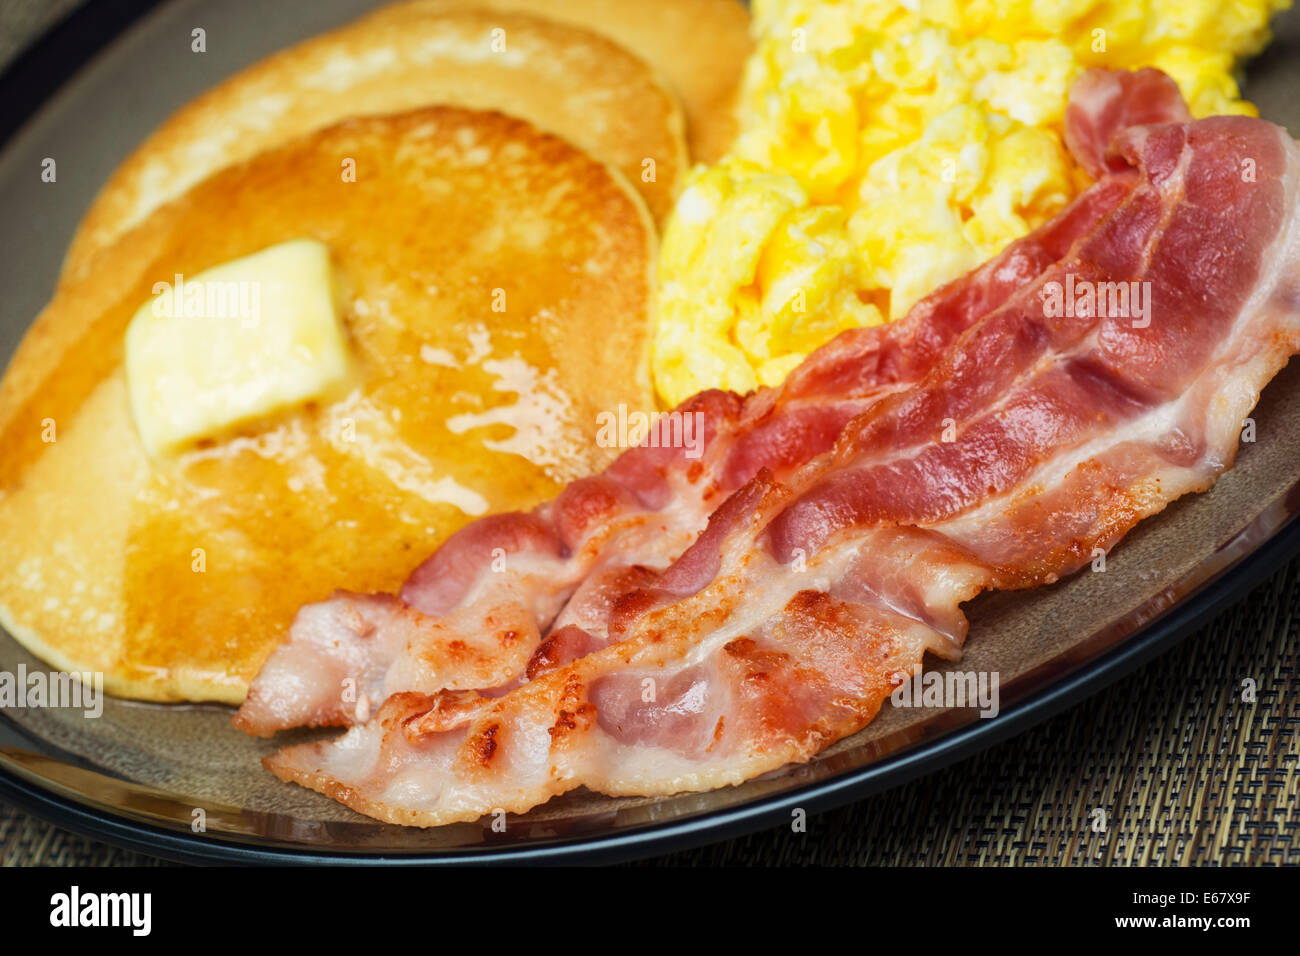 Eggs Bacon Pancakes and Scrambled Eggs Breakfast - Stock Image